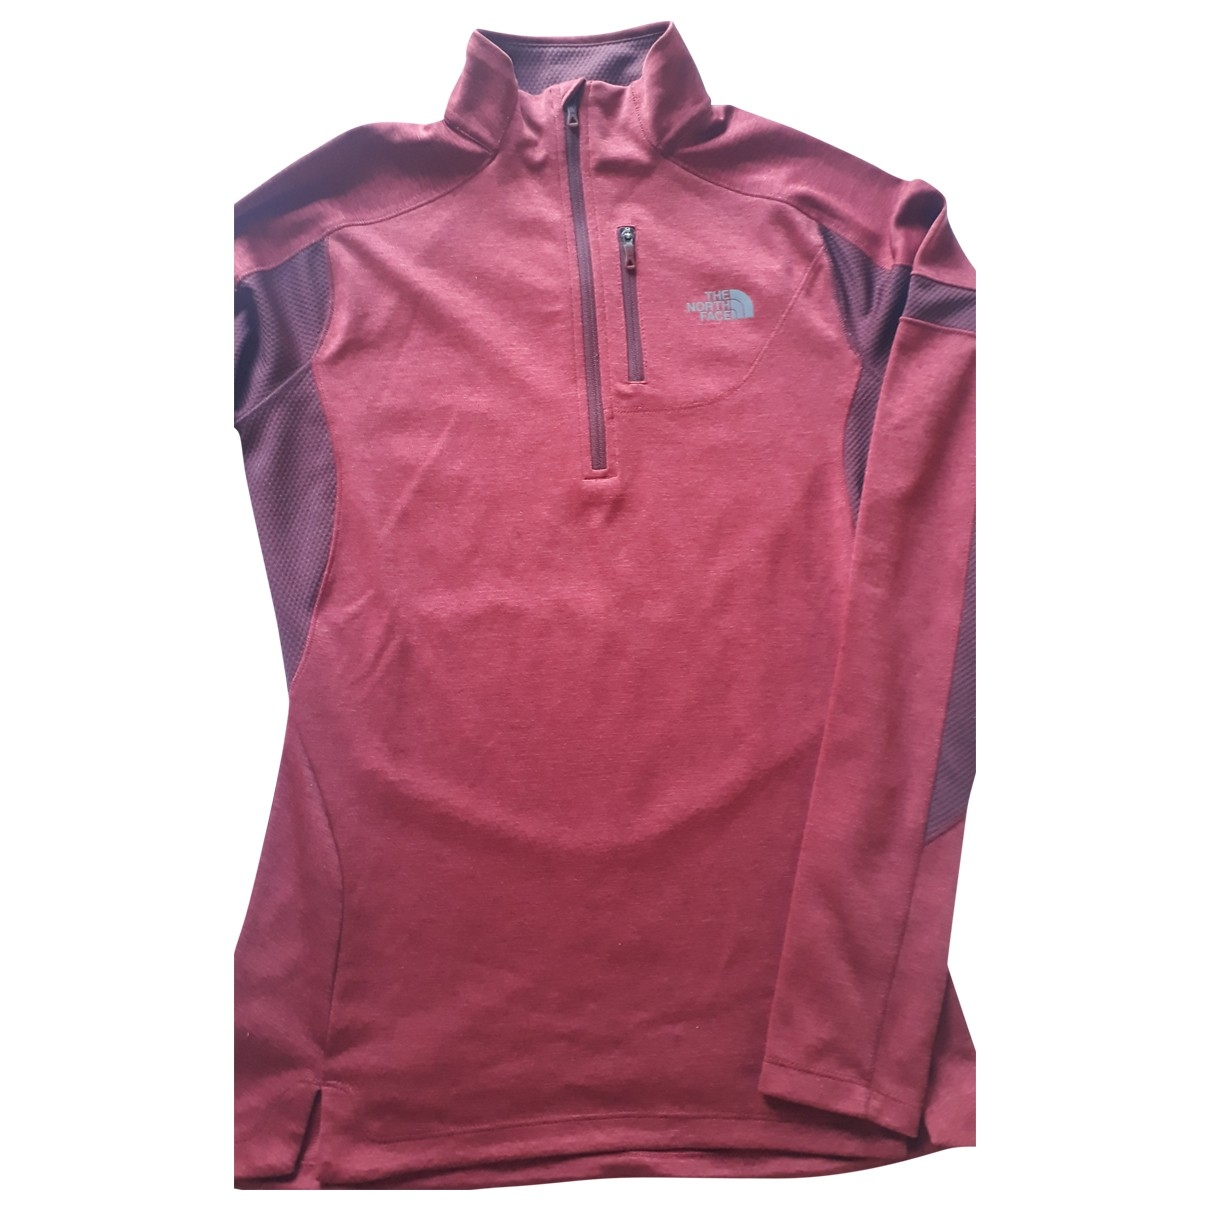 The North Face \N Red  top for Women S International